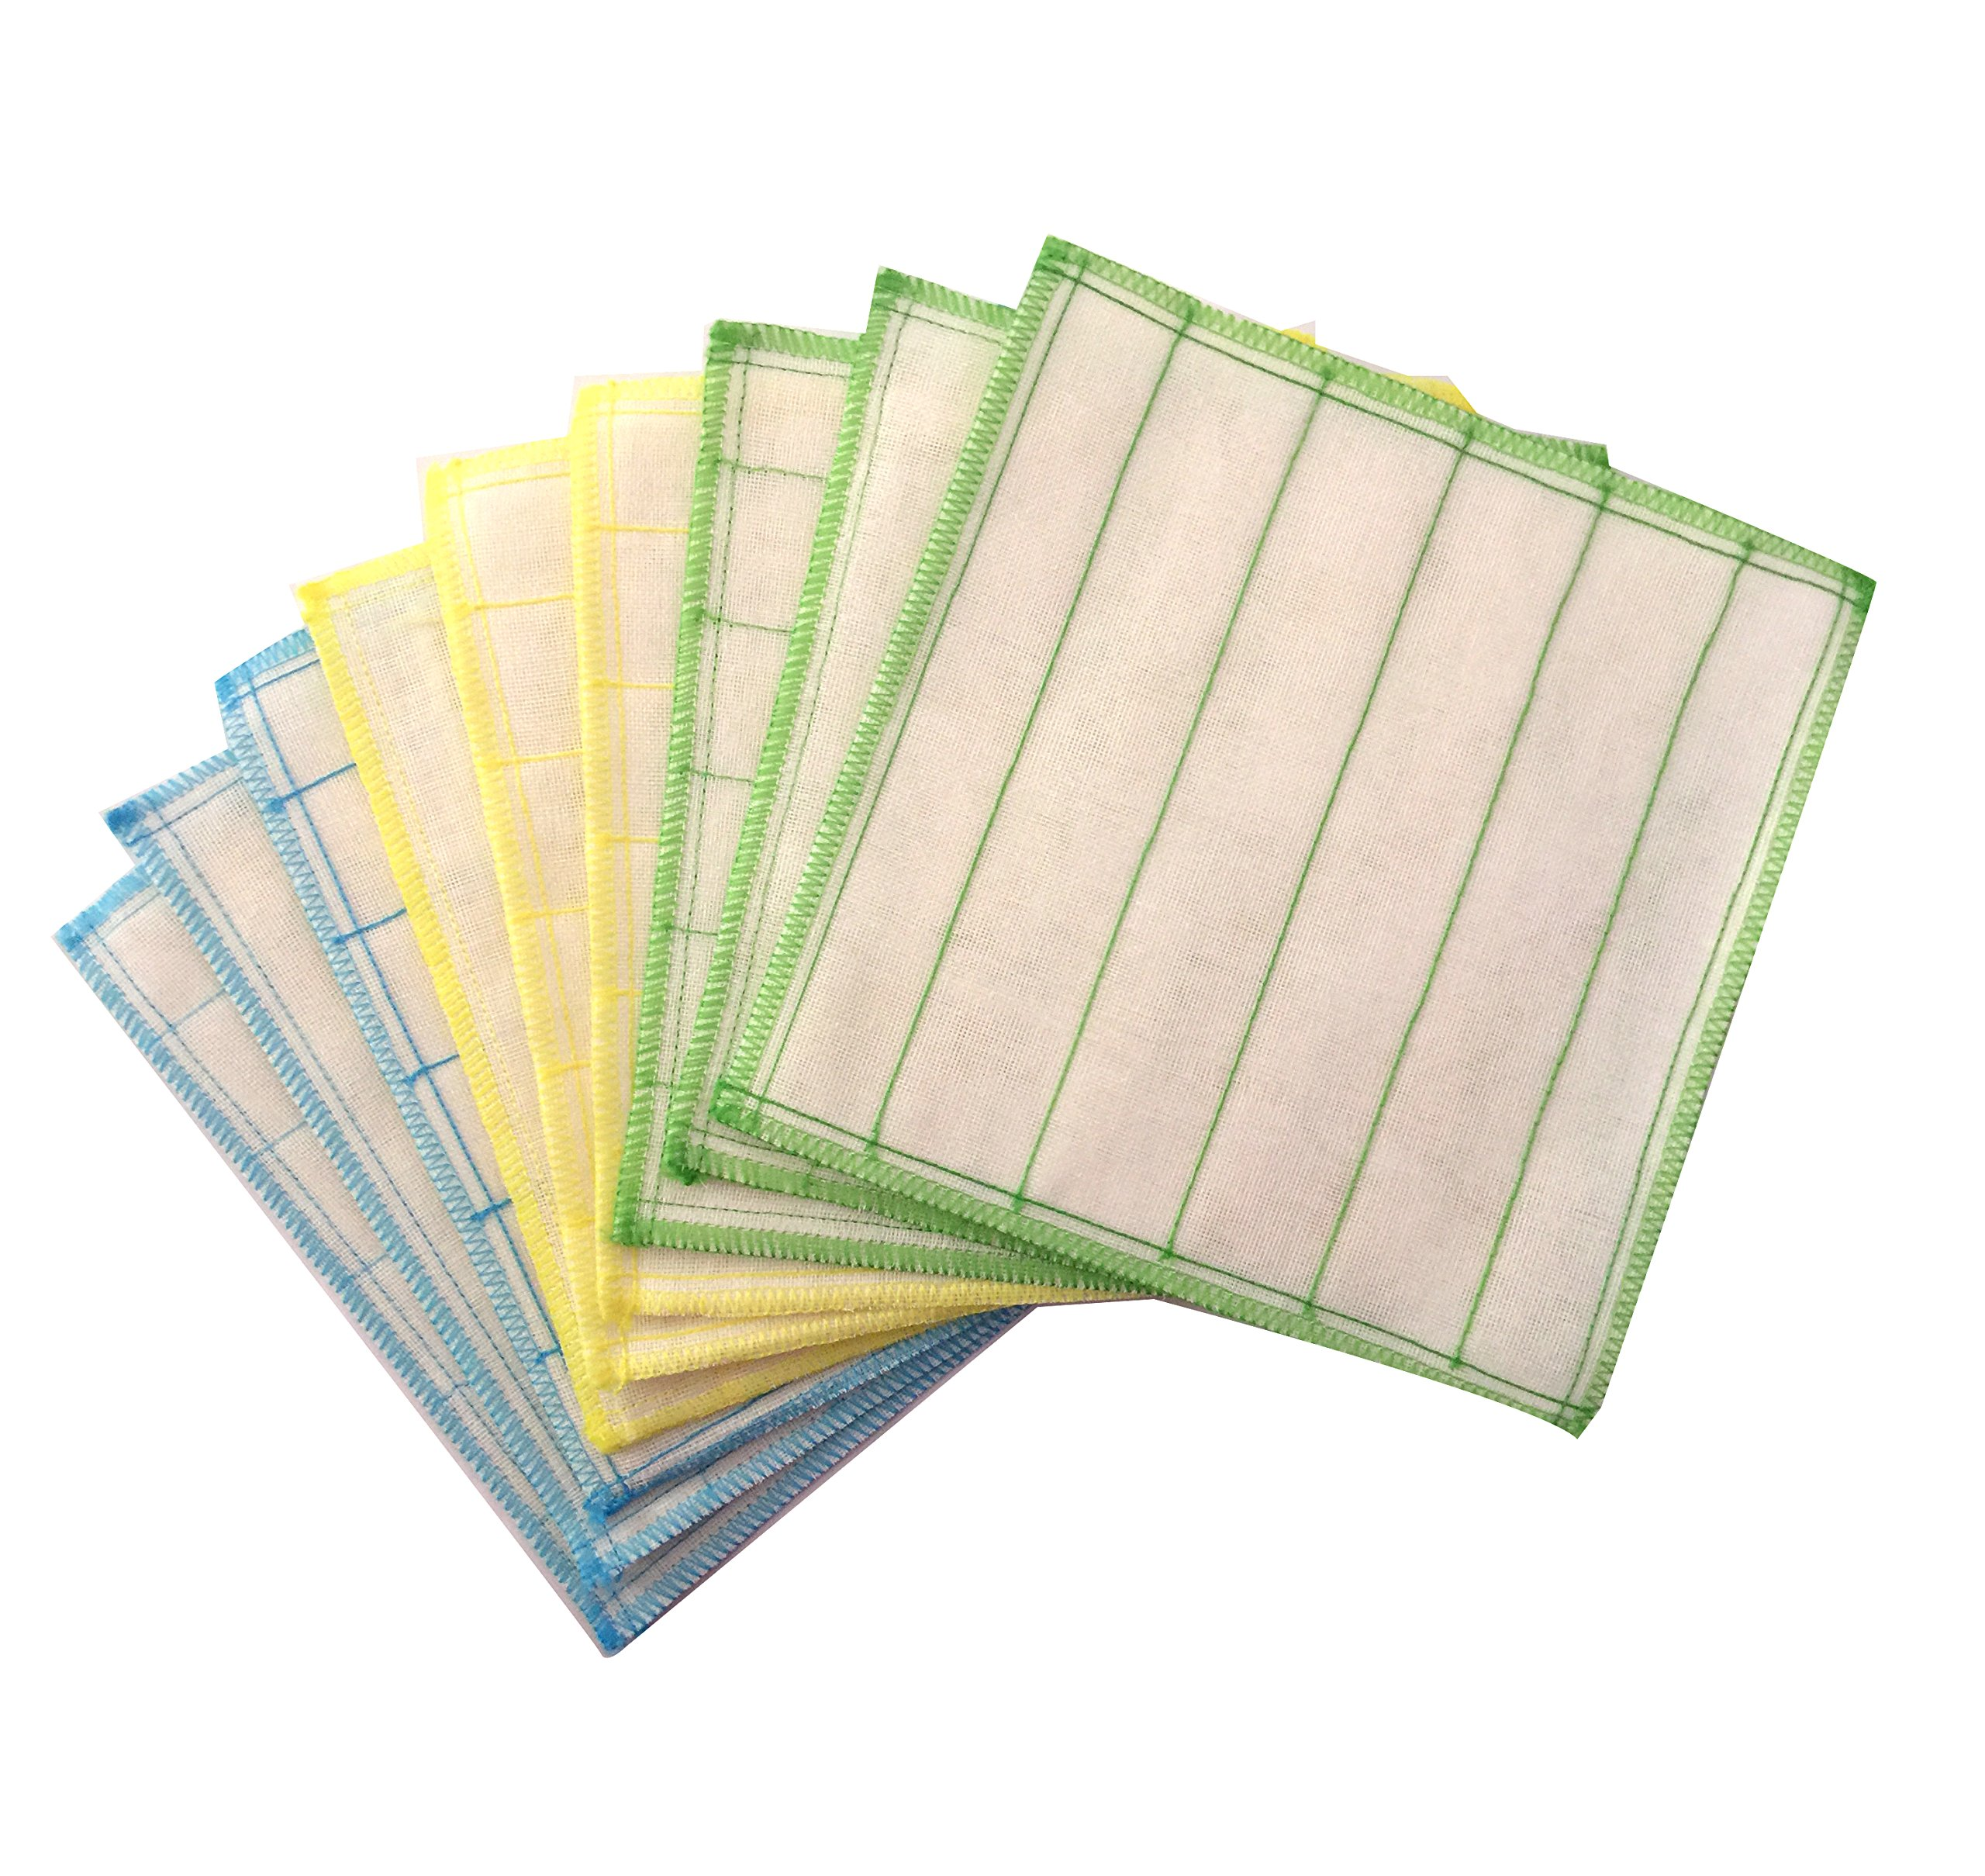 Silverstar 100% Wood Fiber Cleaning Cloth, Dish Cloth,Best Kitchen Cloths, 9-pack, 30cm X 30cm